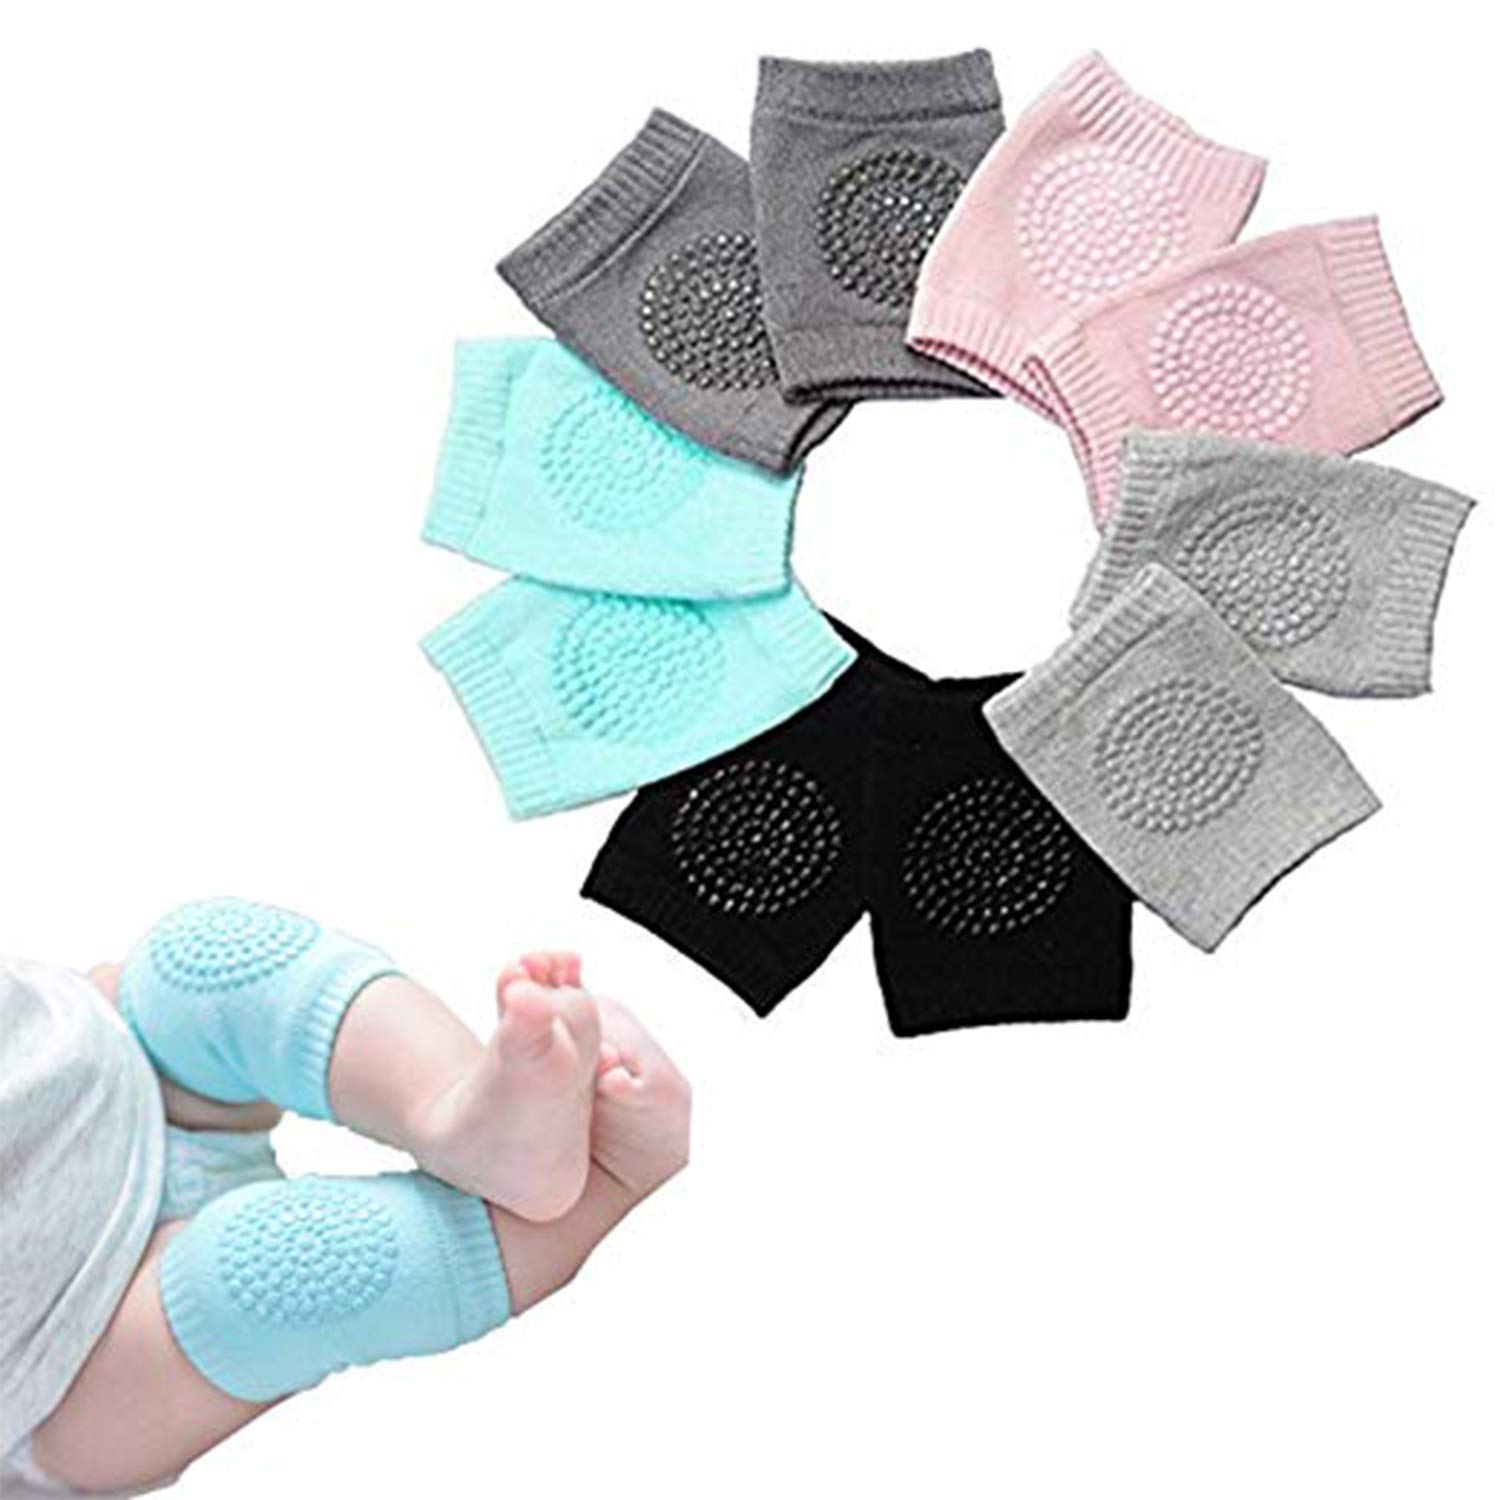 Baby Crawling Anti-Slip Knee,Bosoner Unisex Baby Toddlers Kneepads,Adjustable Knee Elbow Pads Crawling,Summer knee environmental dispensing baby kneepads leg warmers 5 Pairs Keep warm